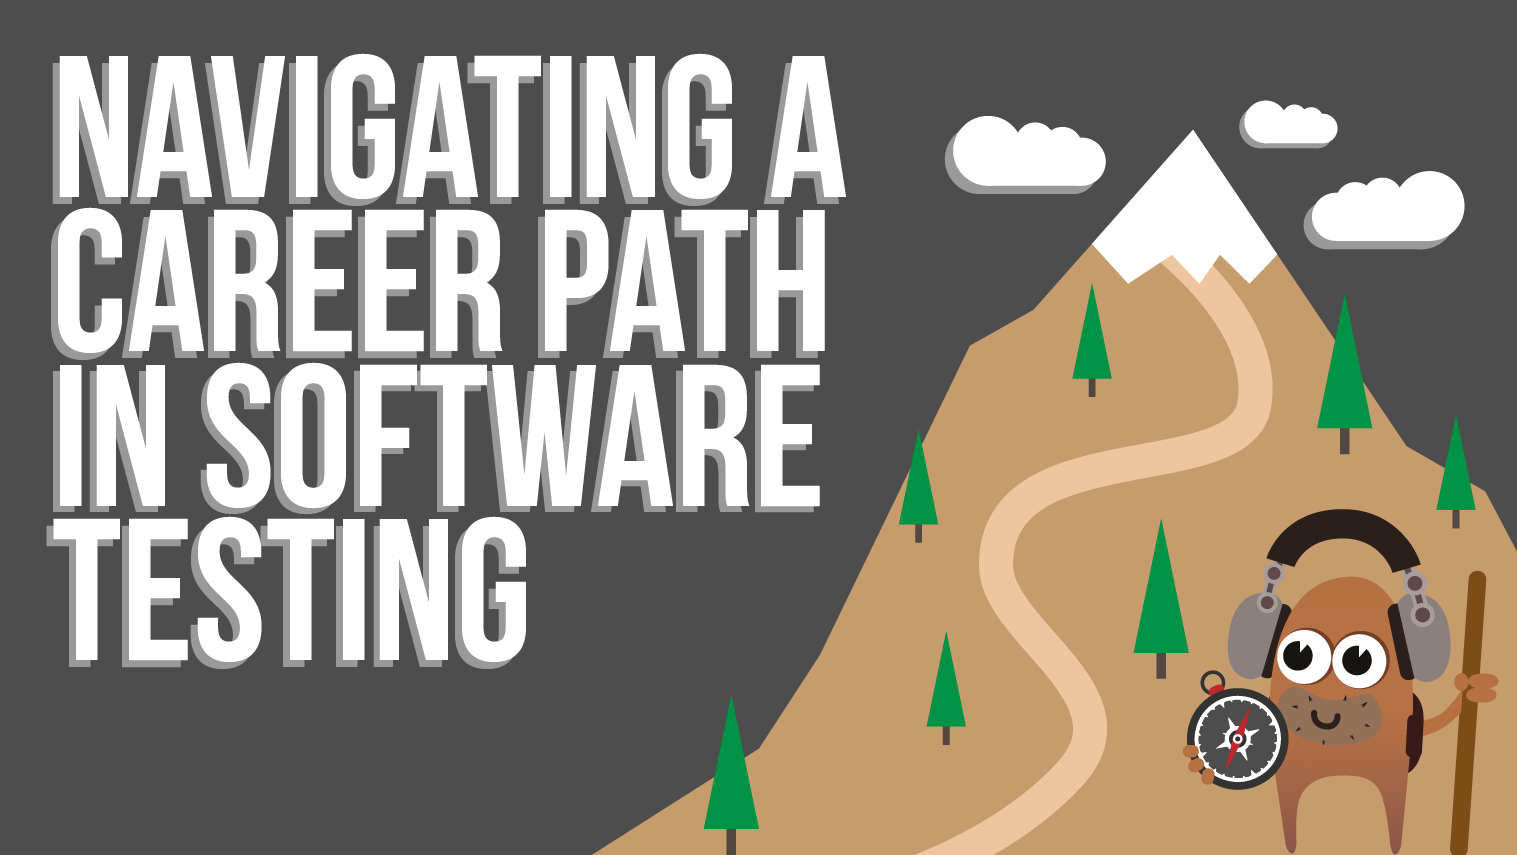 Navigating A Career Path In Software Testing